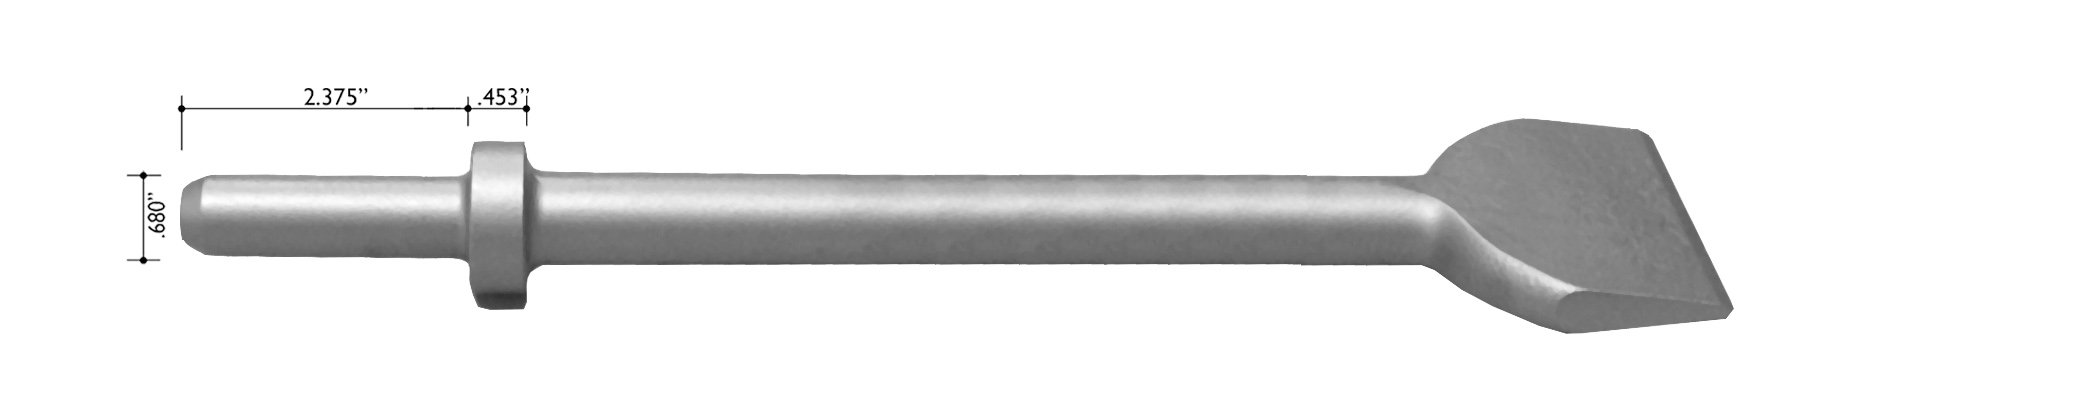 Champion Chisel, 9-Inch Long by 3-Inch Wide .680 Round Shank Round Collar Chipping Hammer Chisel